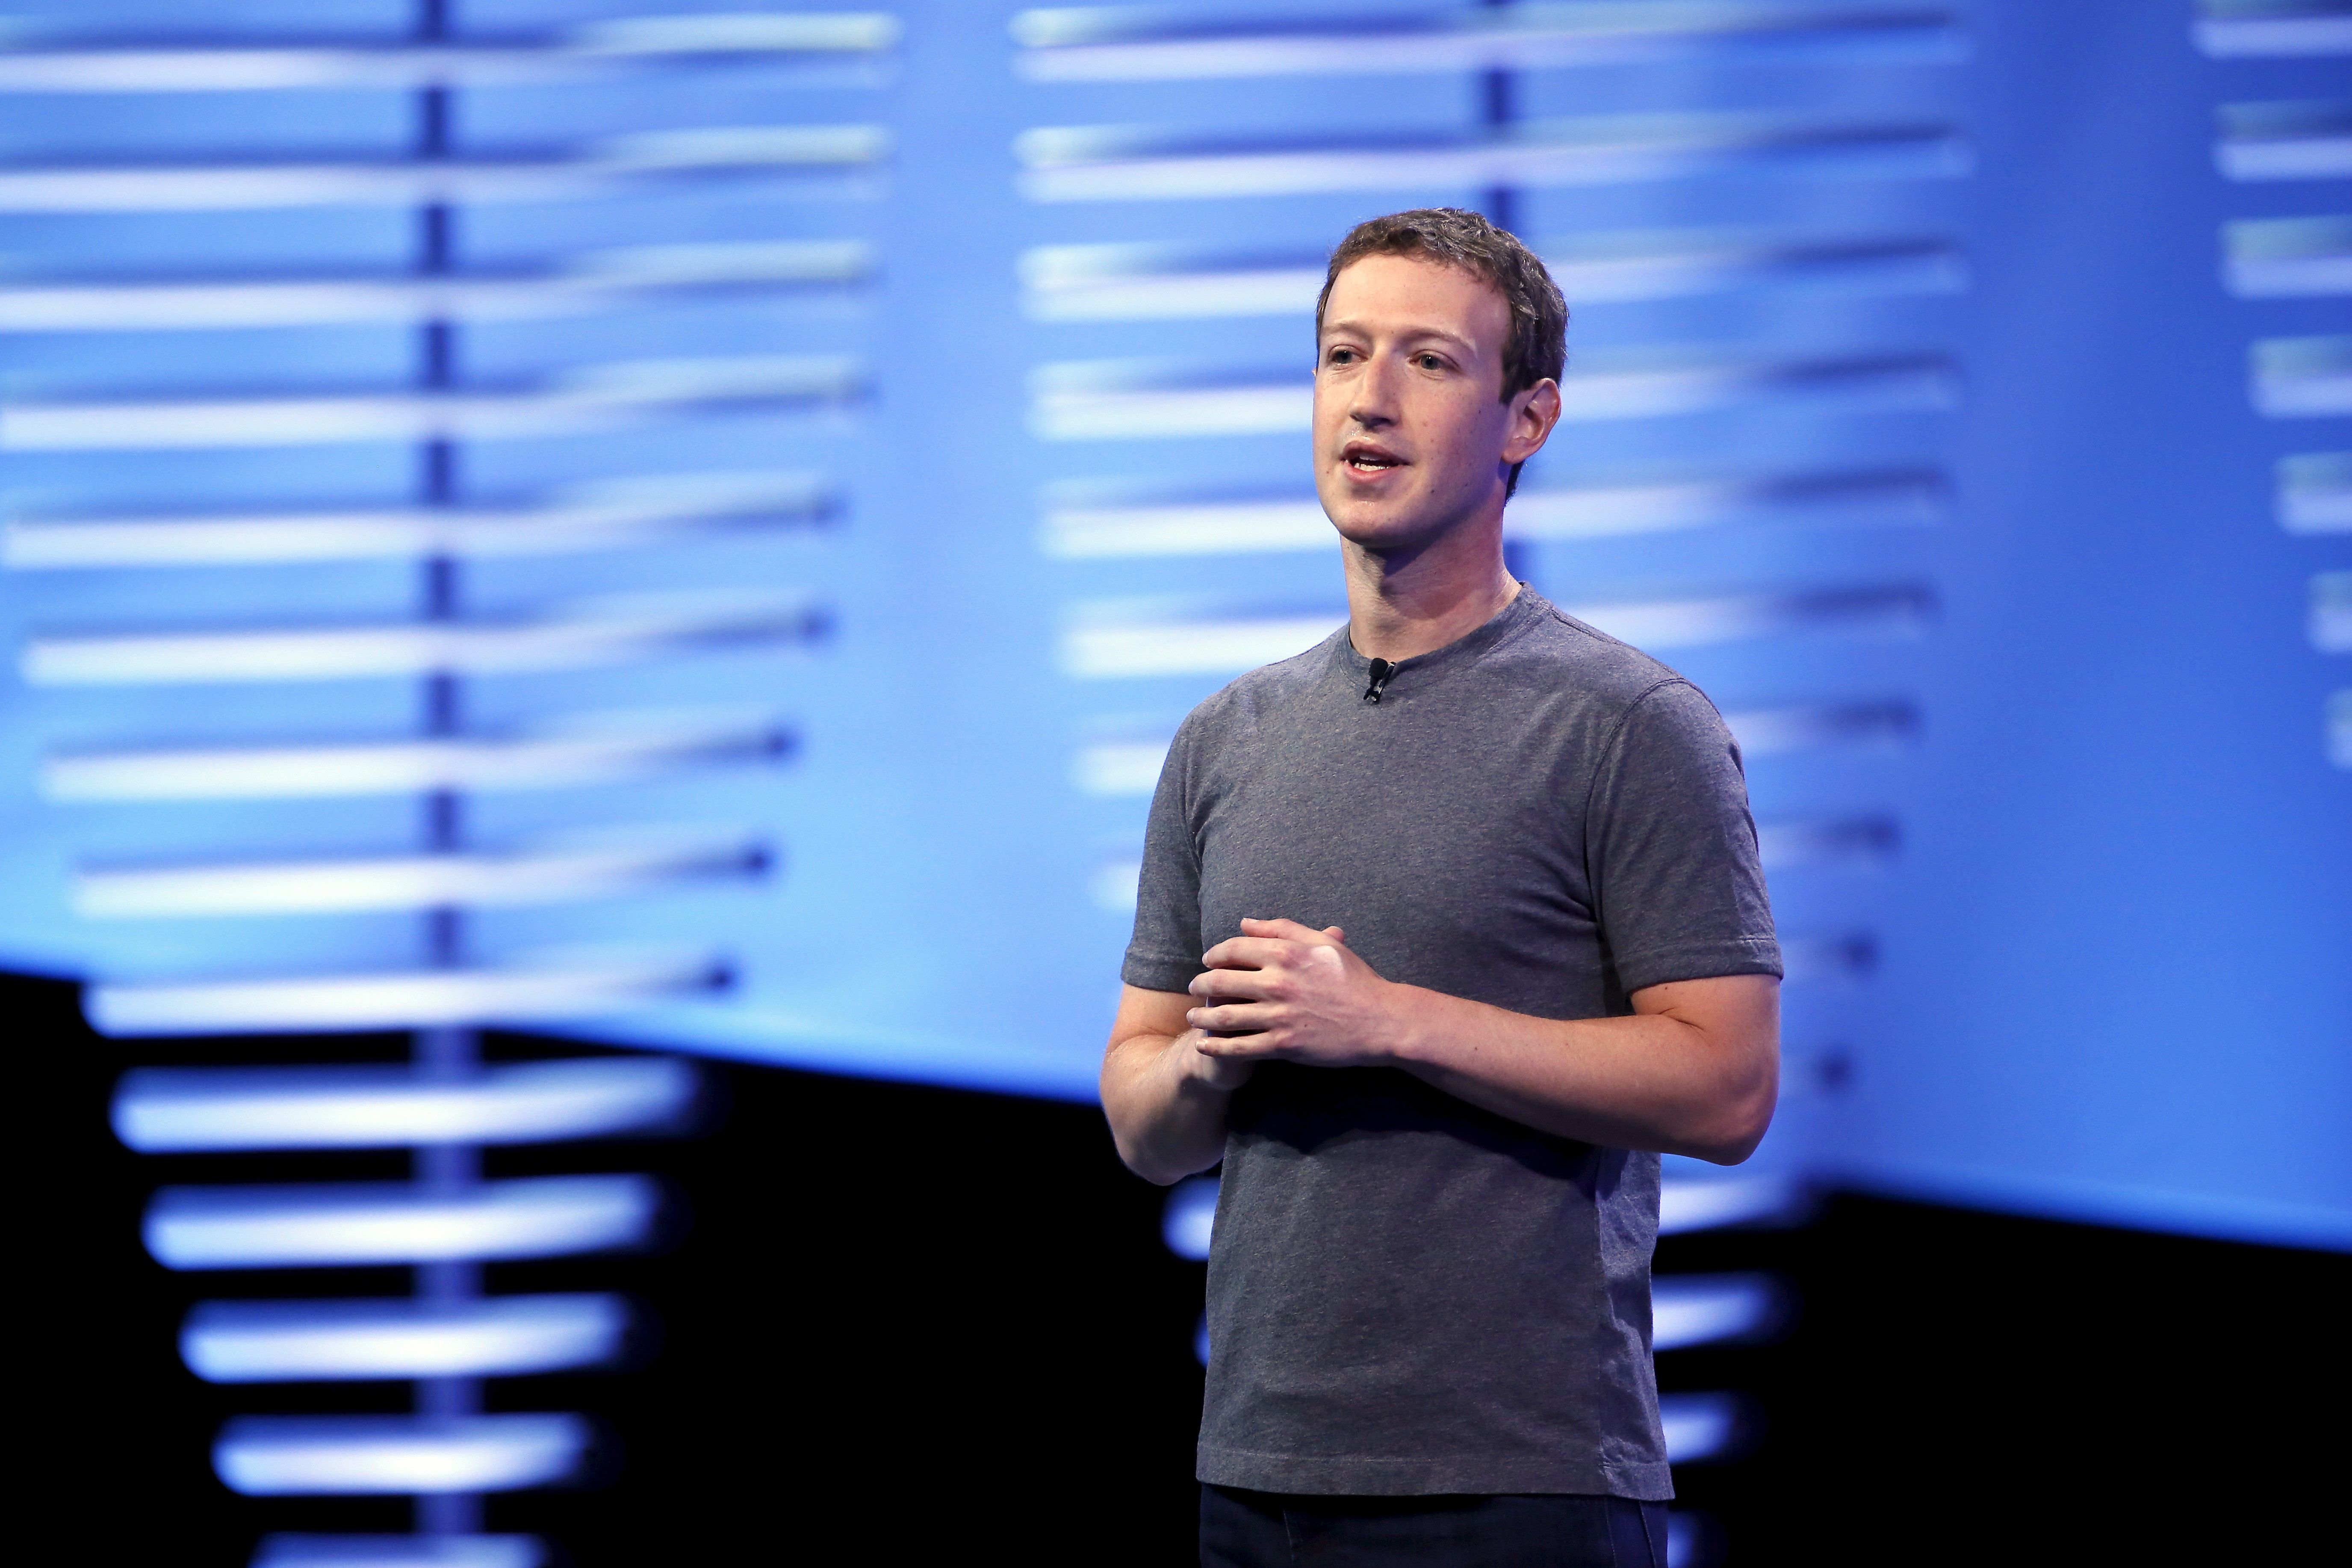 Lawmakers in the U.S. andU.K. are demanding that Facebook CEO Mark Zuckerberg testify about his company's handling of u